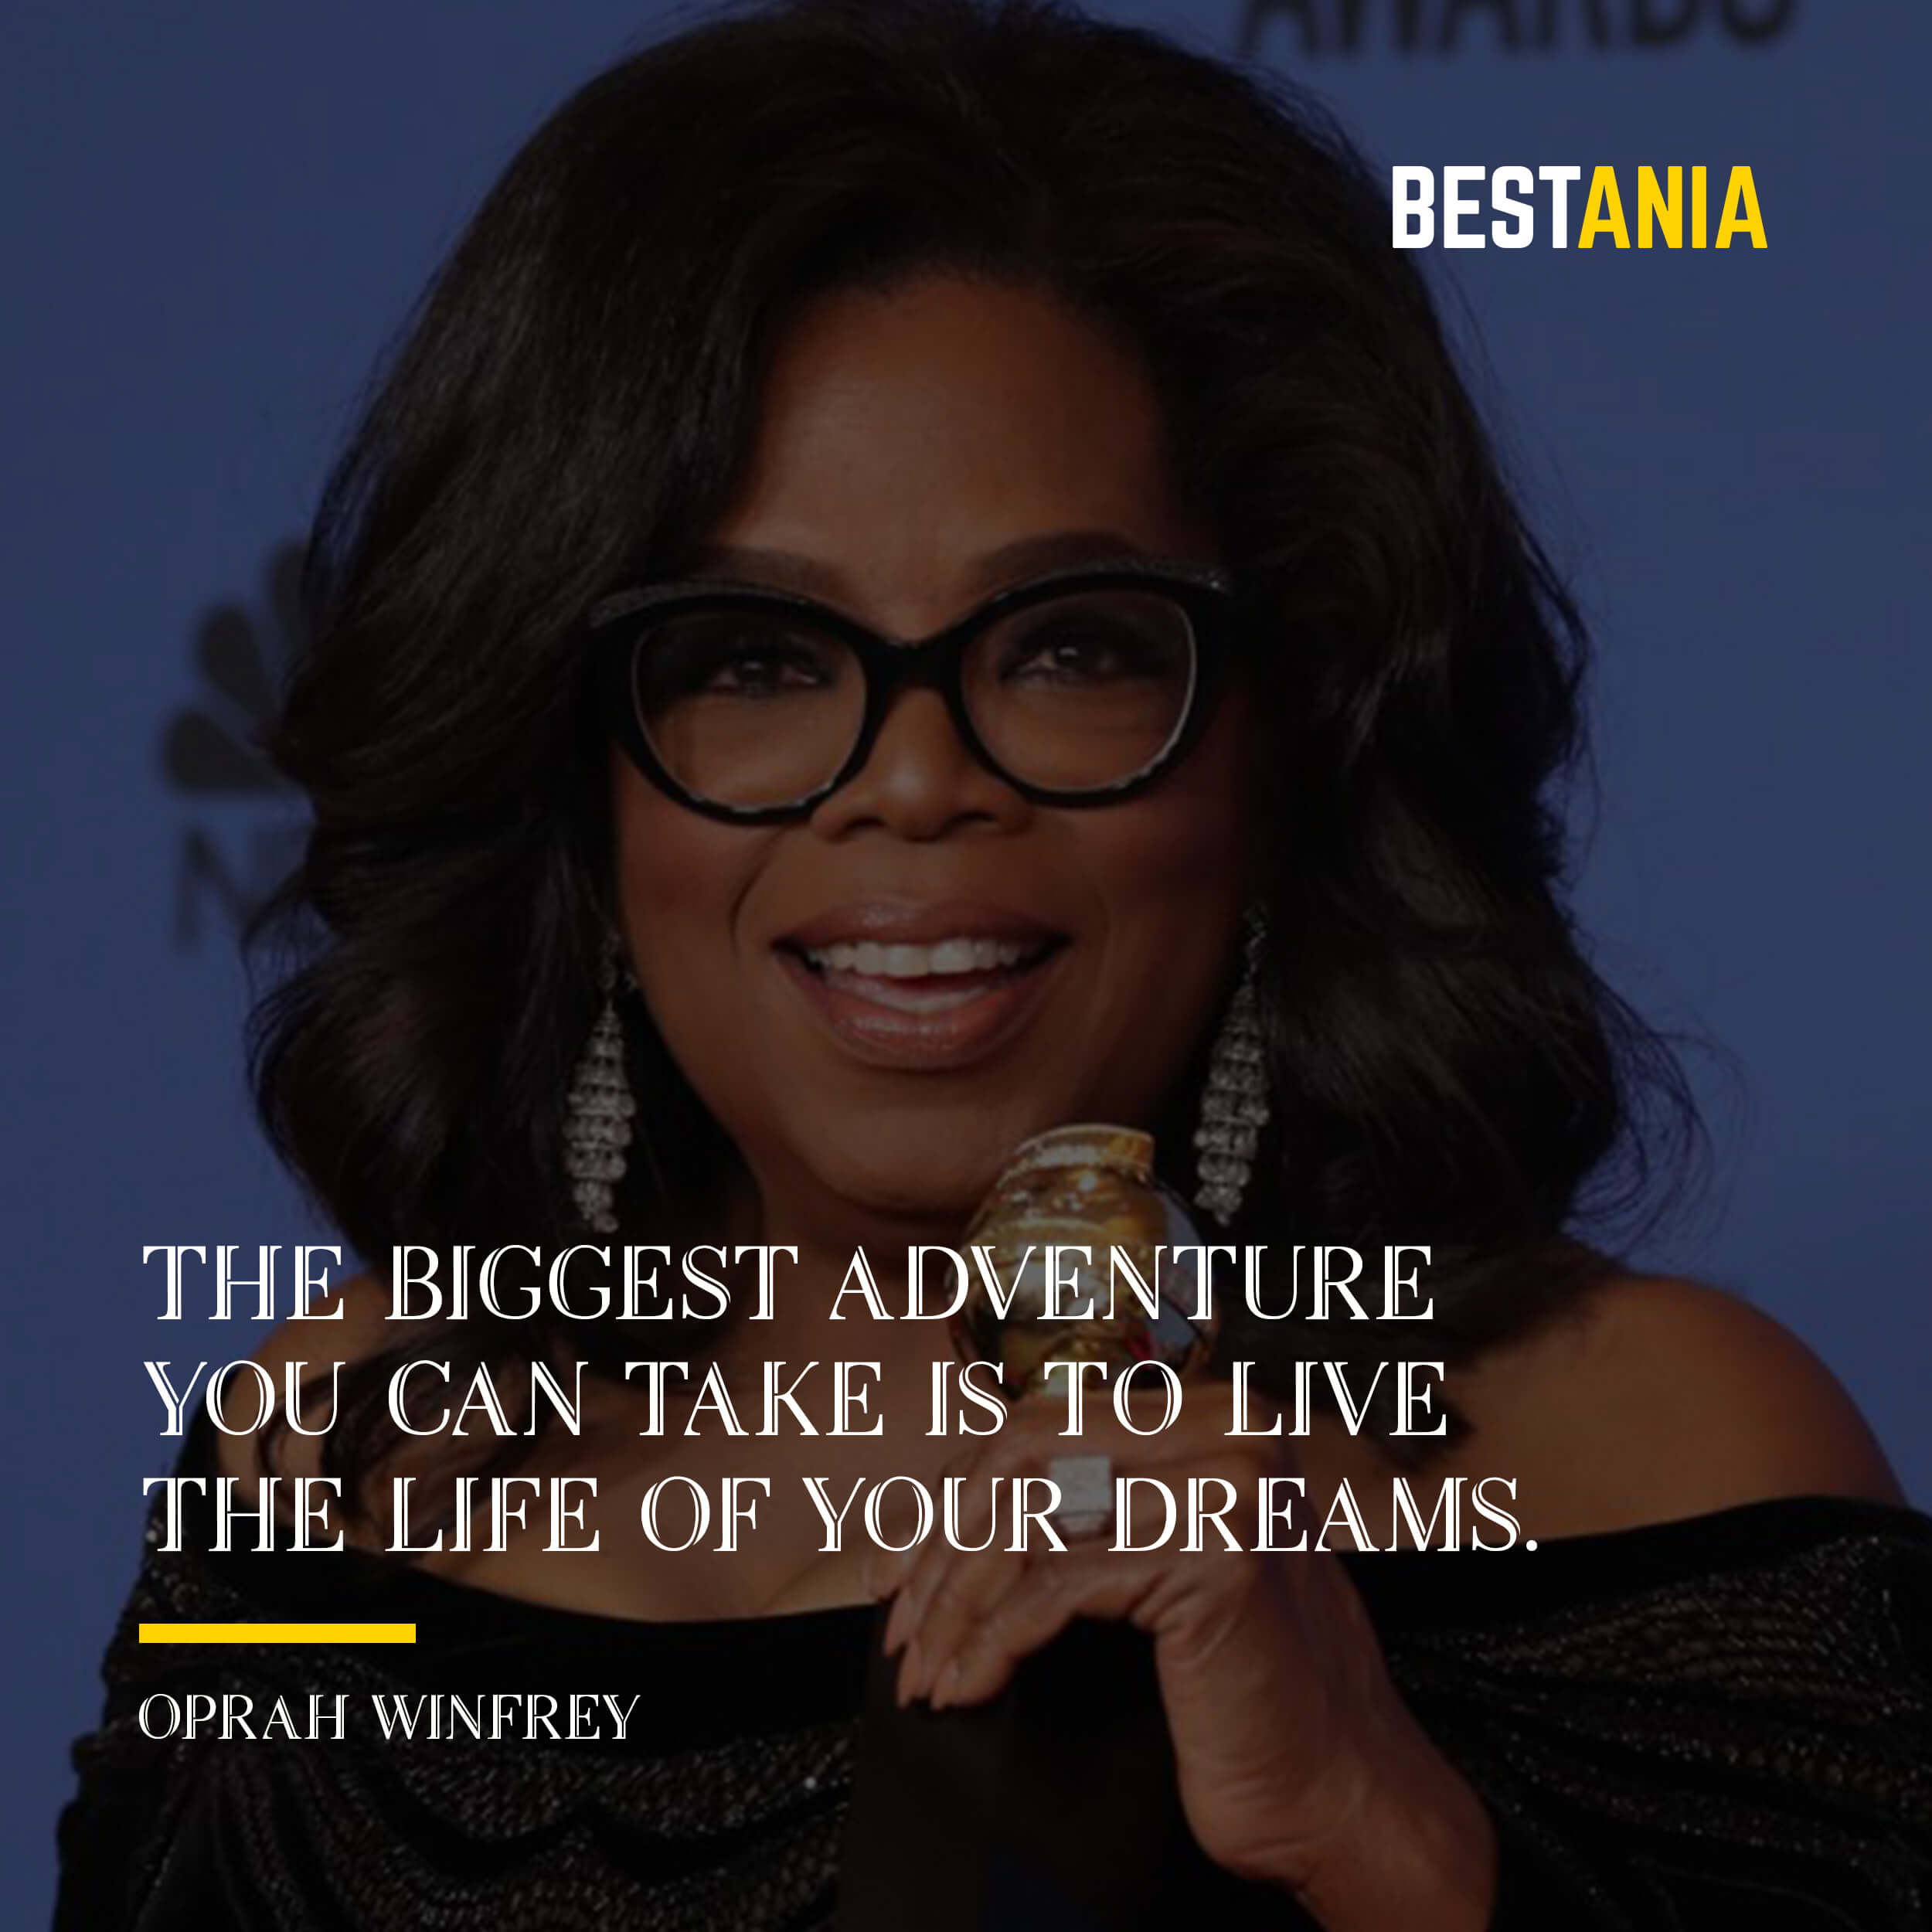 """""""THE BIGGEST ADVENTURE YOU CAN TAKE IS TO LIVE THE LIFE OF YOUR DREAMS.""""  OPRAH WINFREY"""